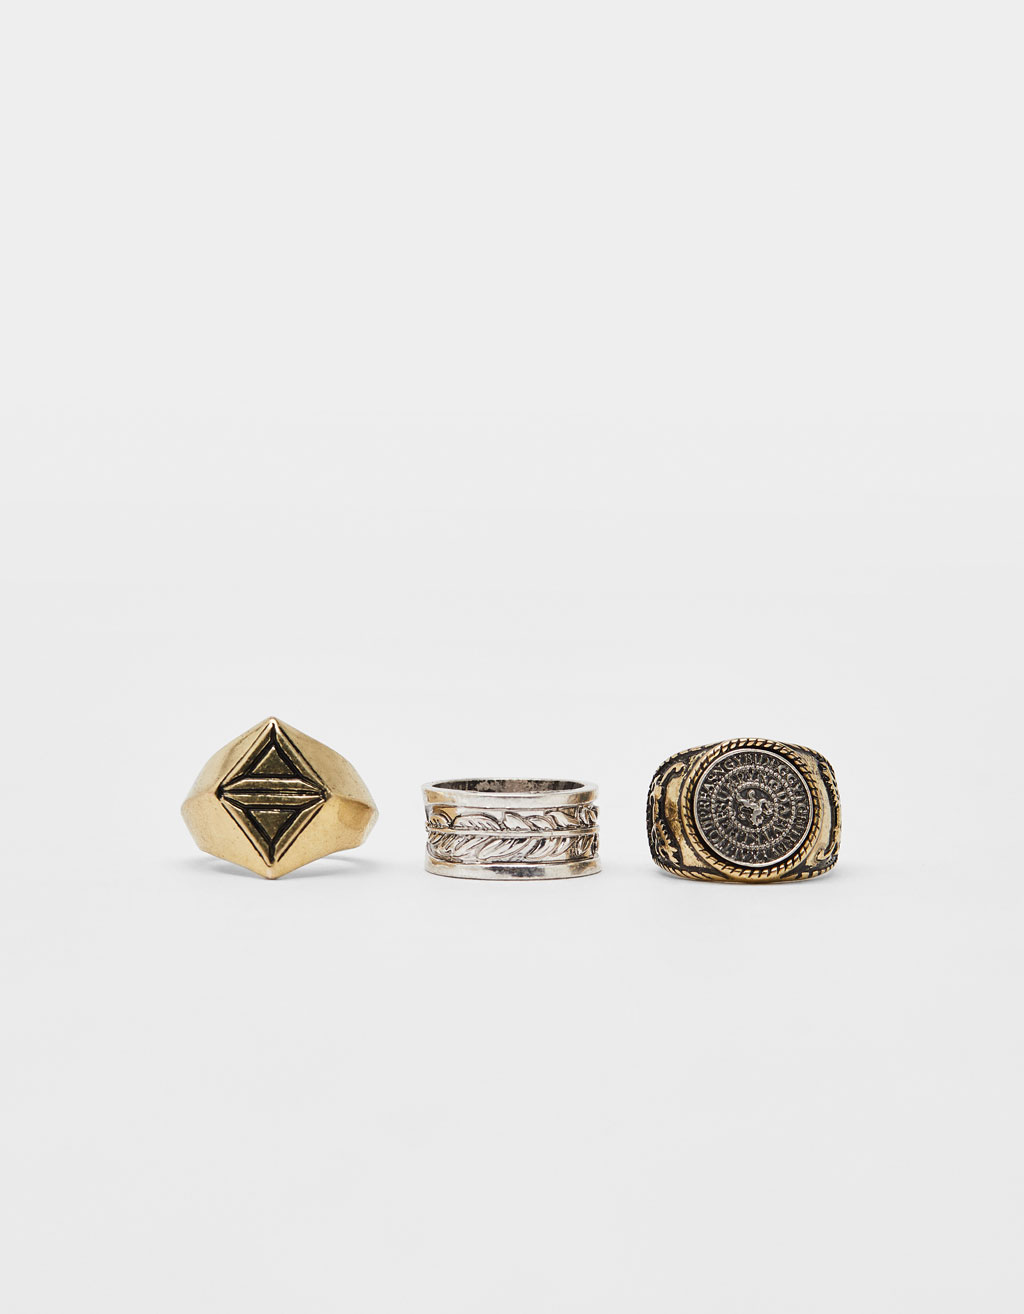 Set of 3 rings